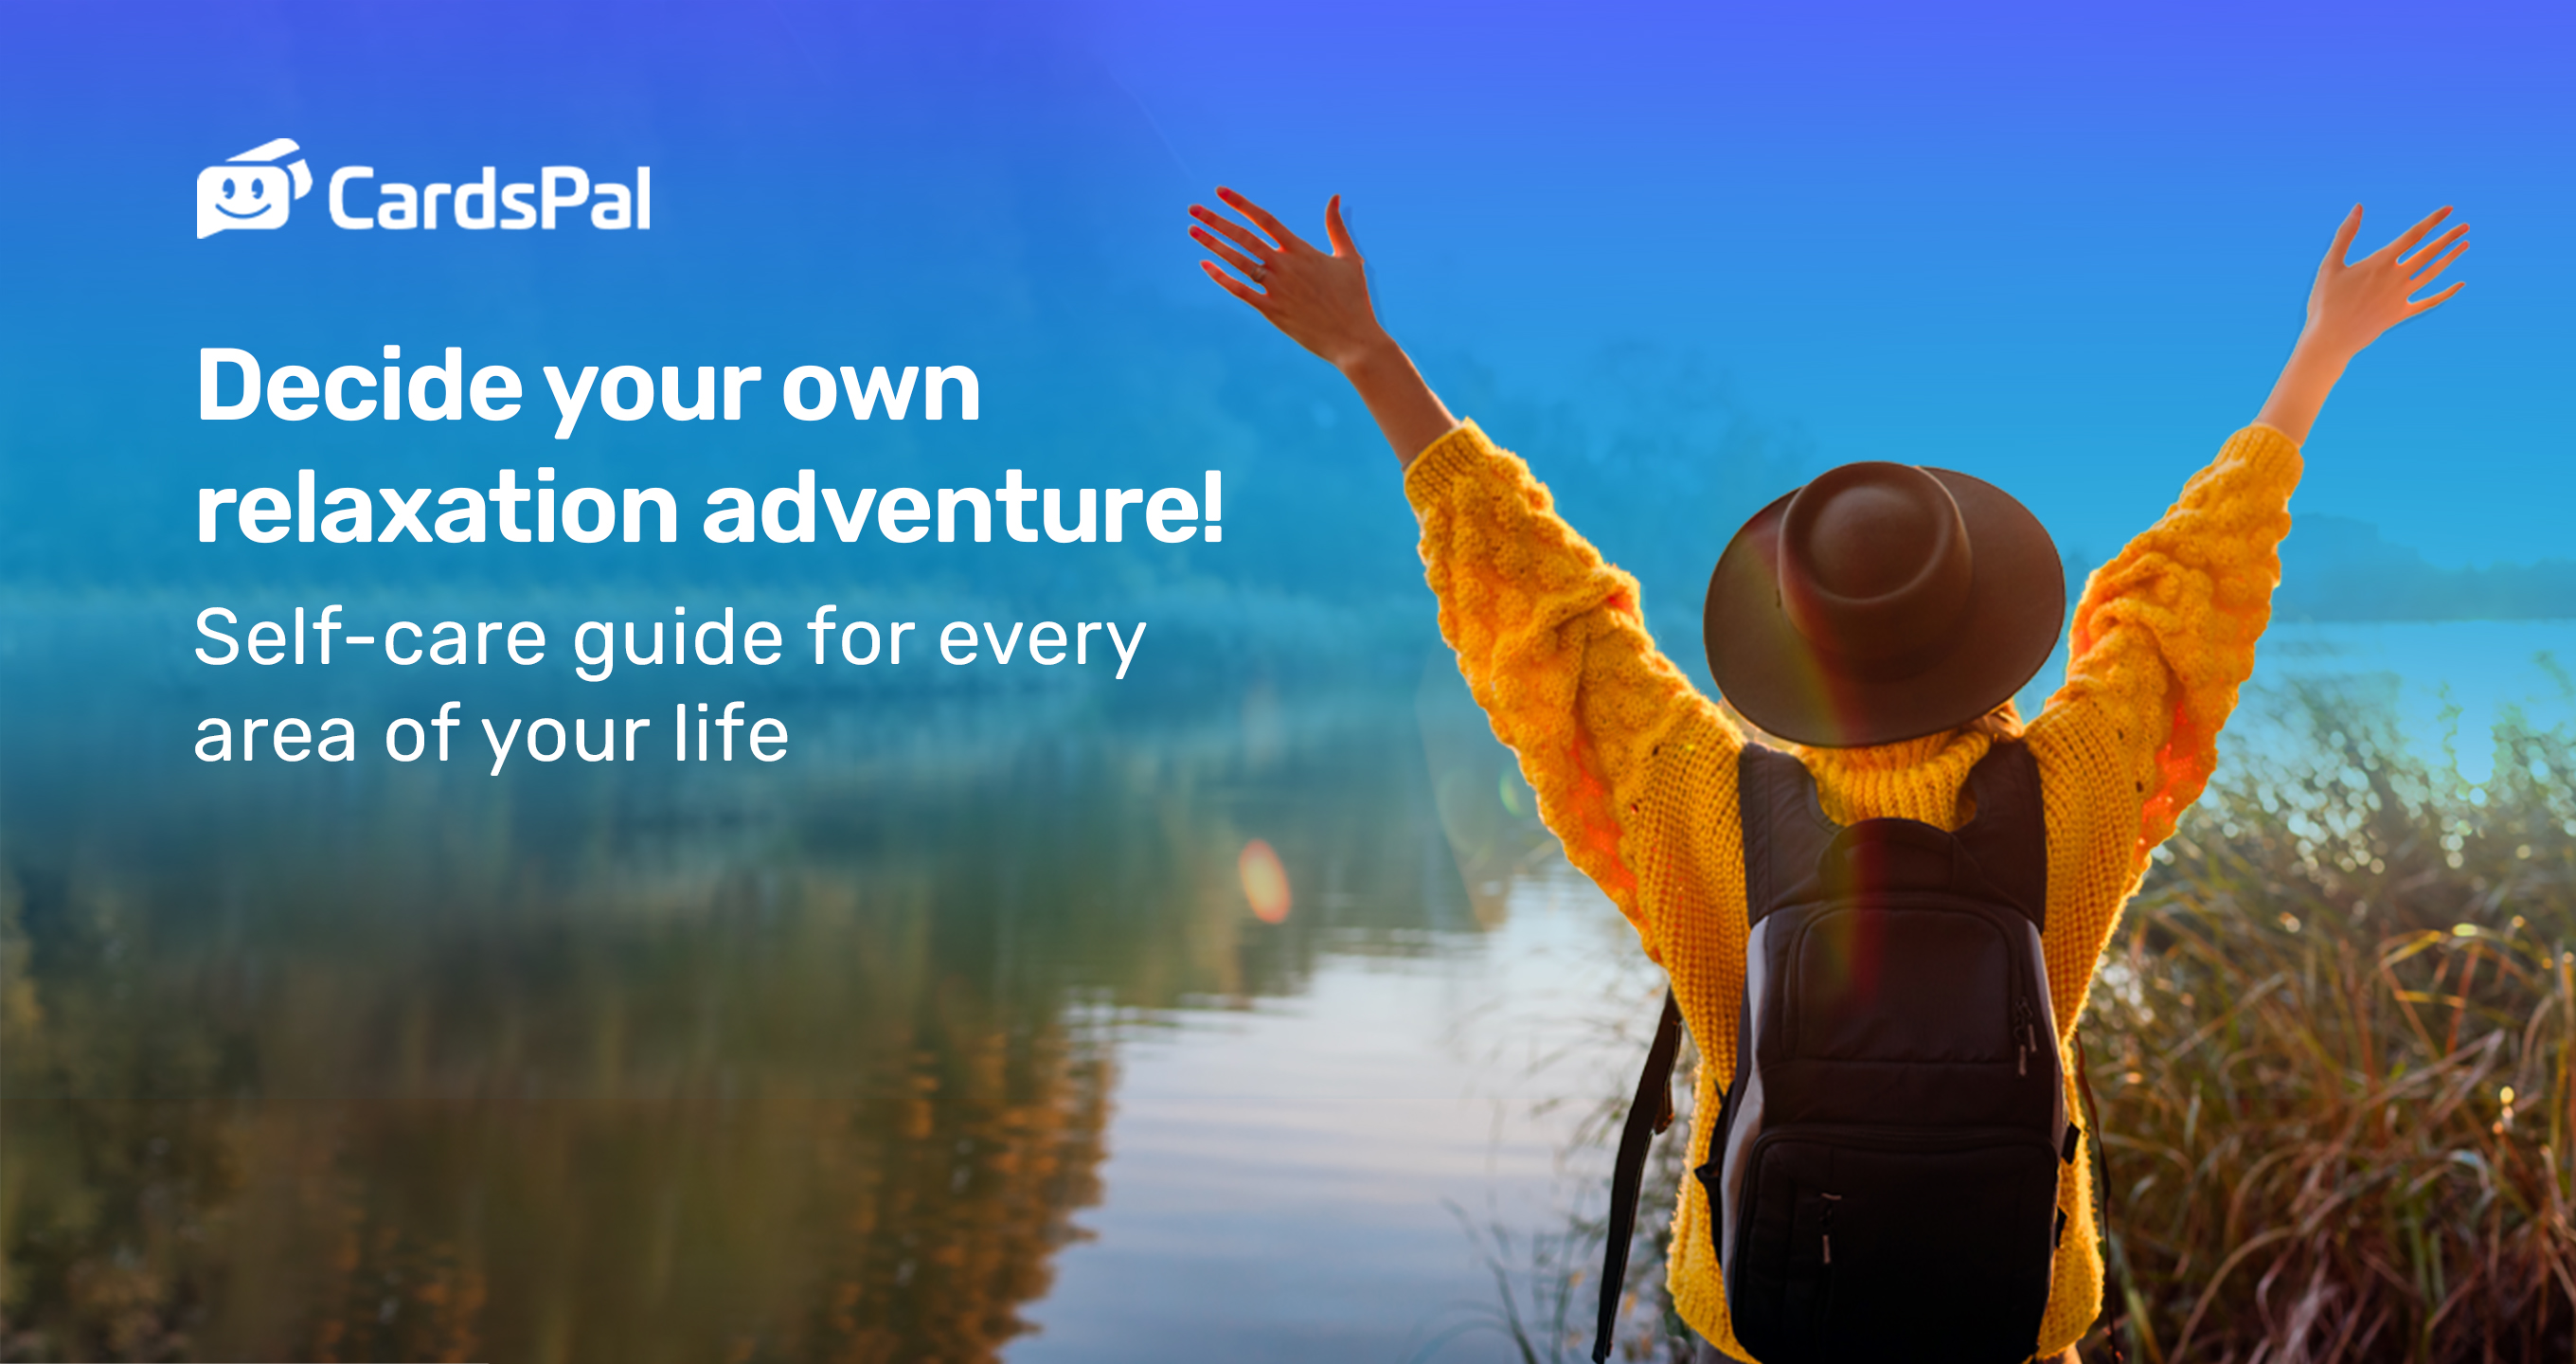 Decide on your own relaxation adventure!